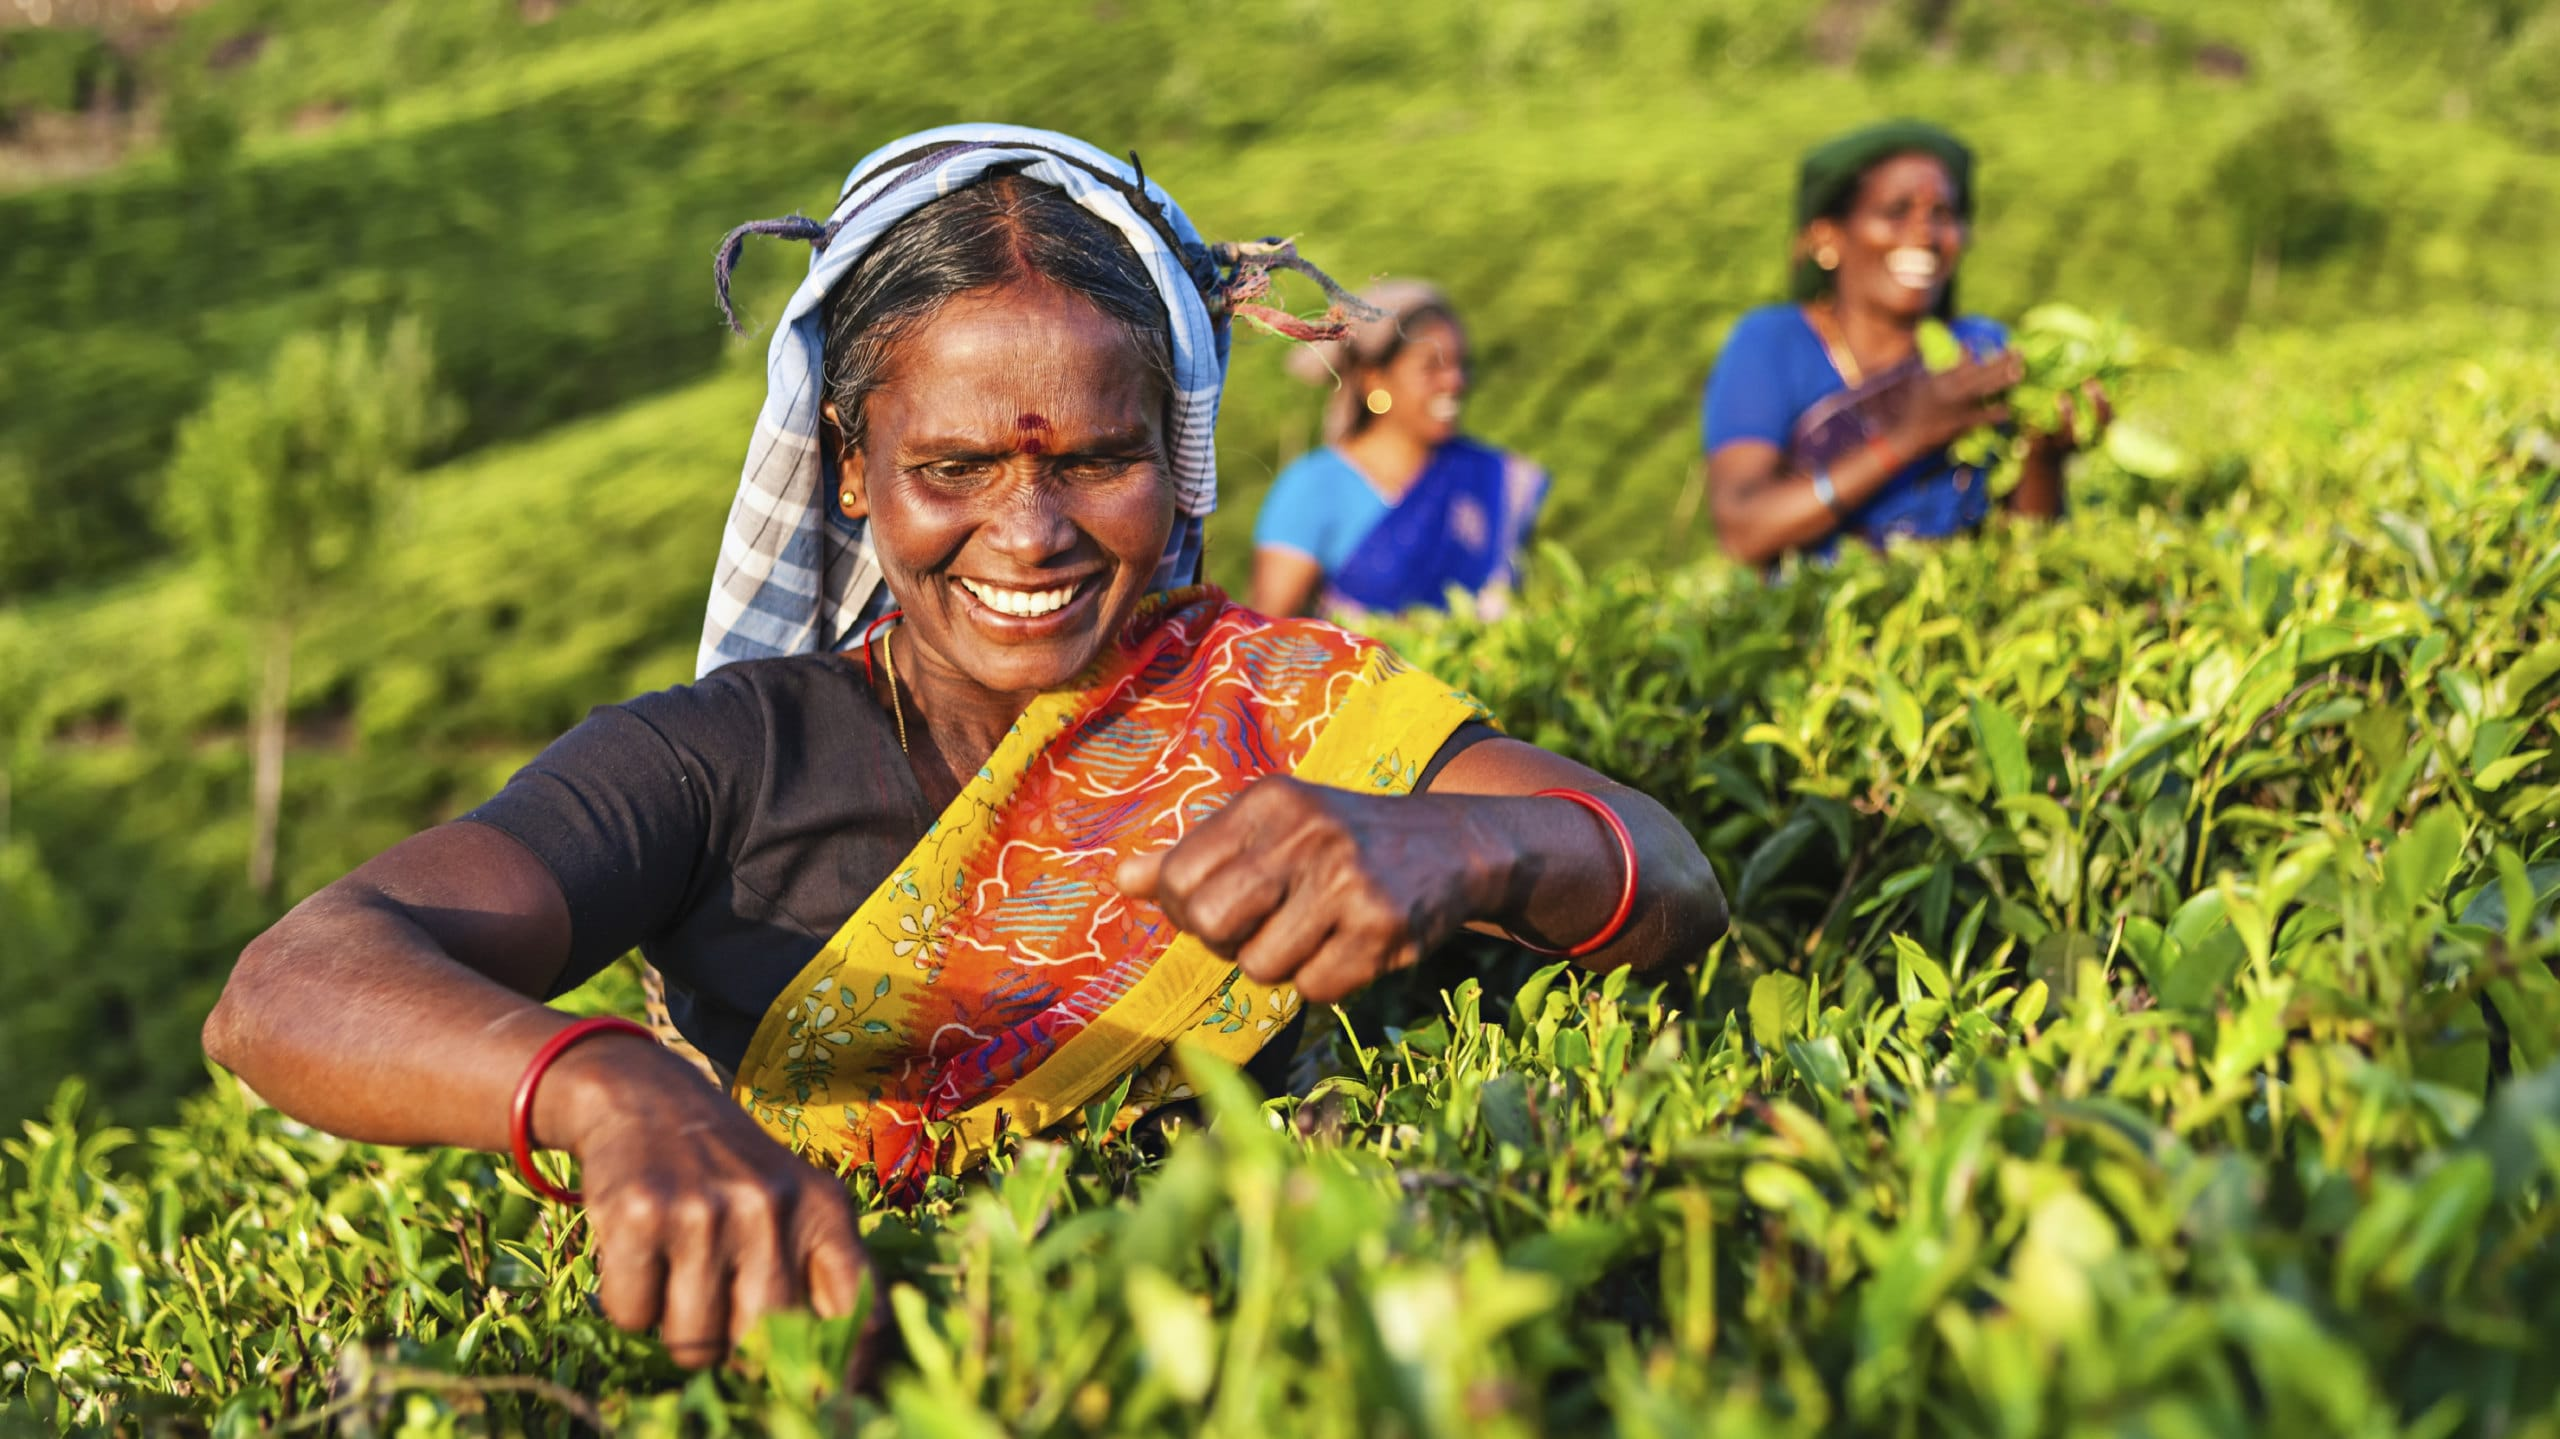 Sri-Lanka_Hill-Country_Tamil-pickers_iStock_000070023121_Large-1